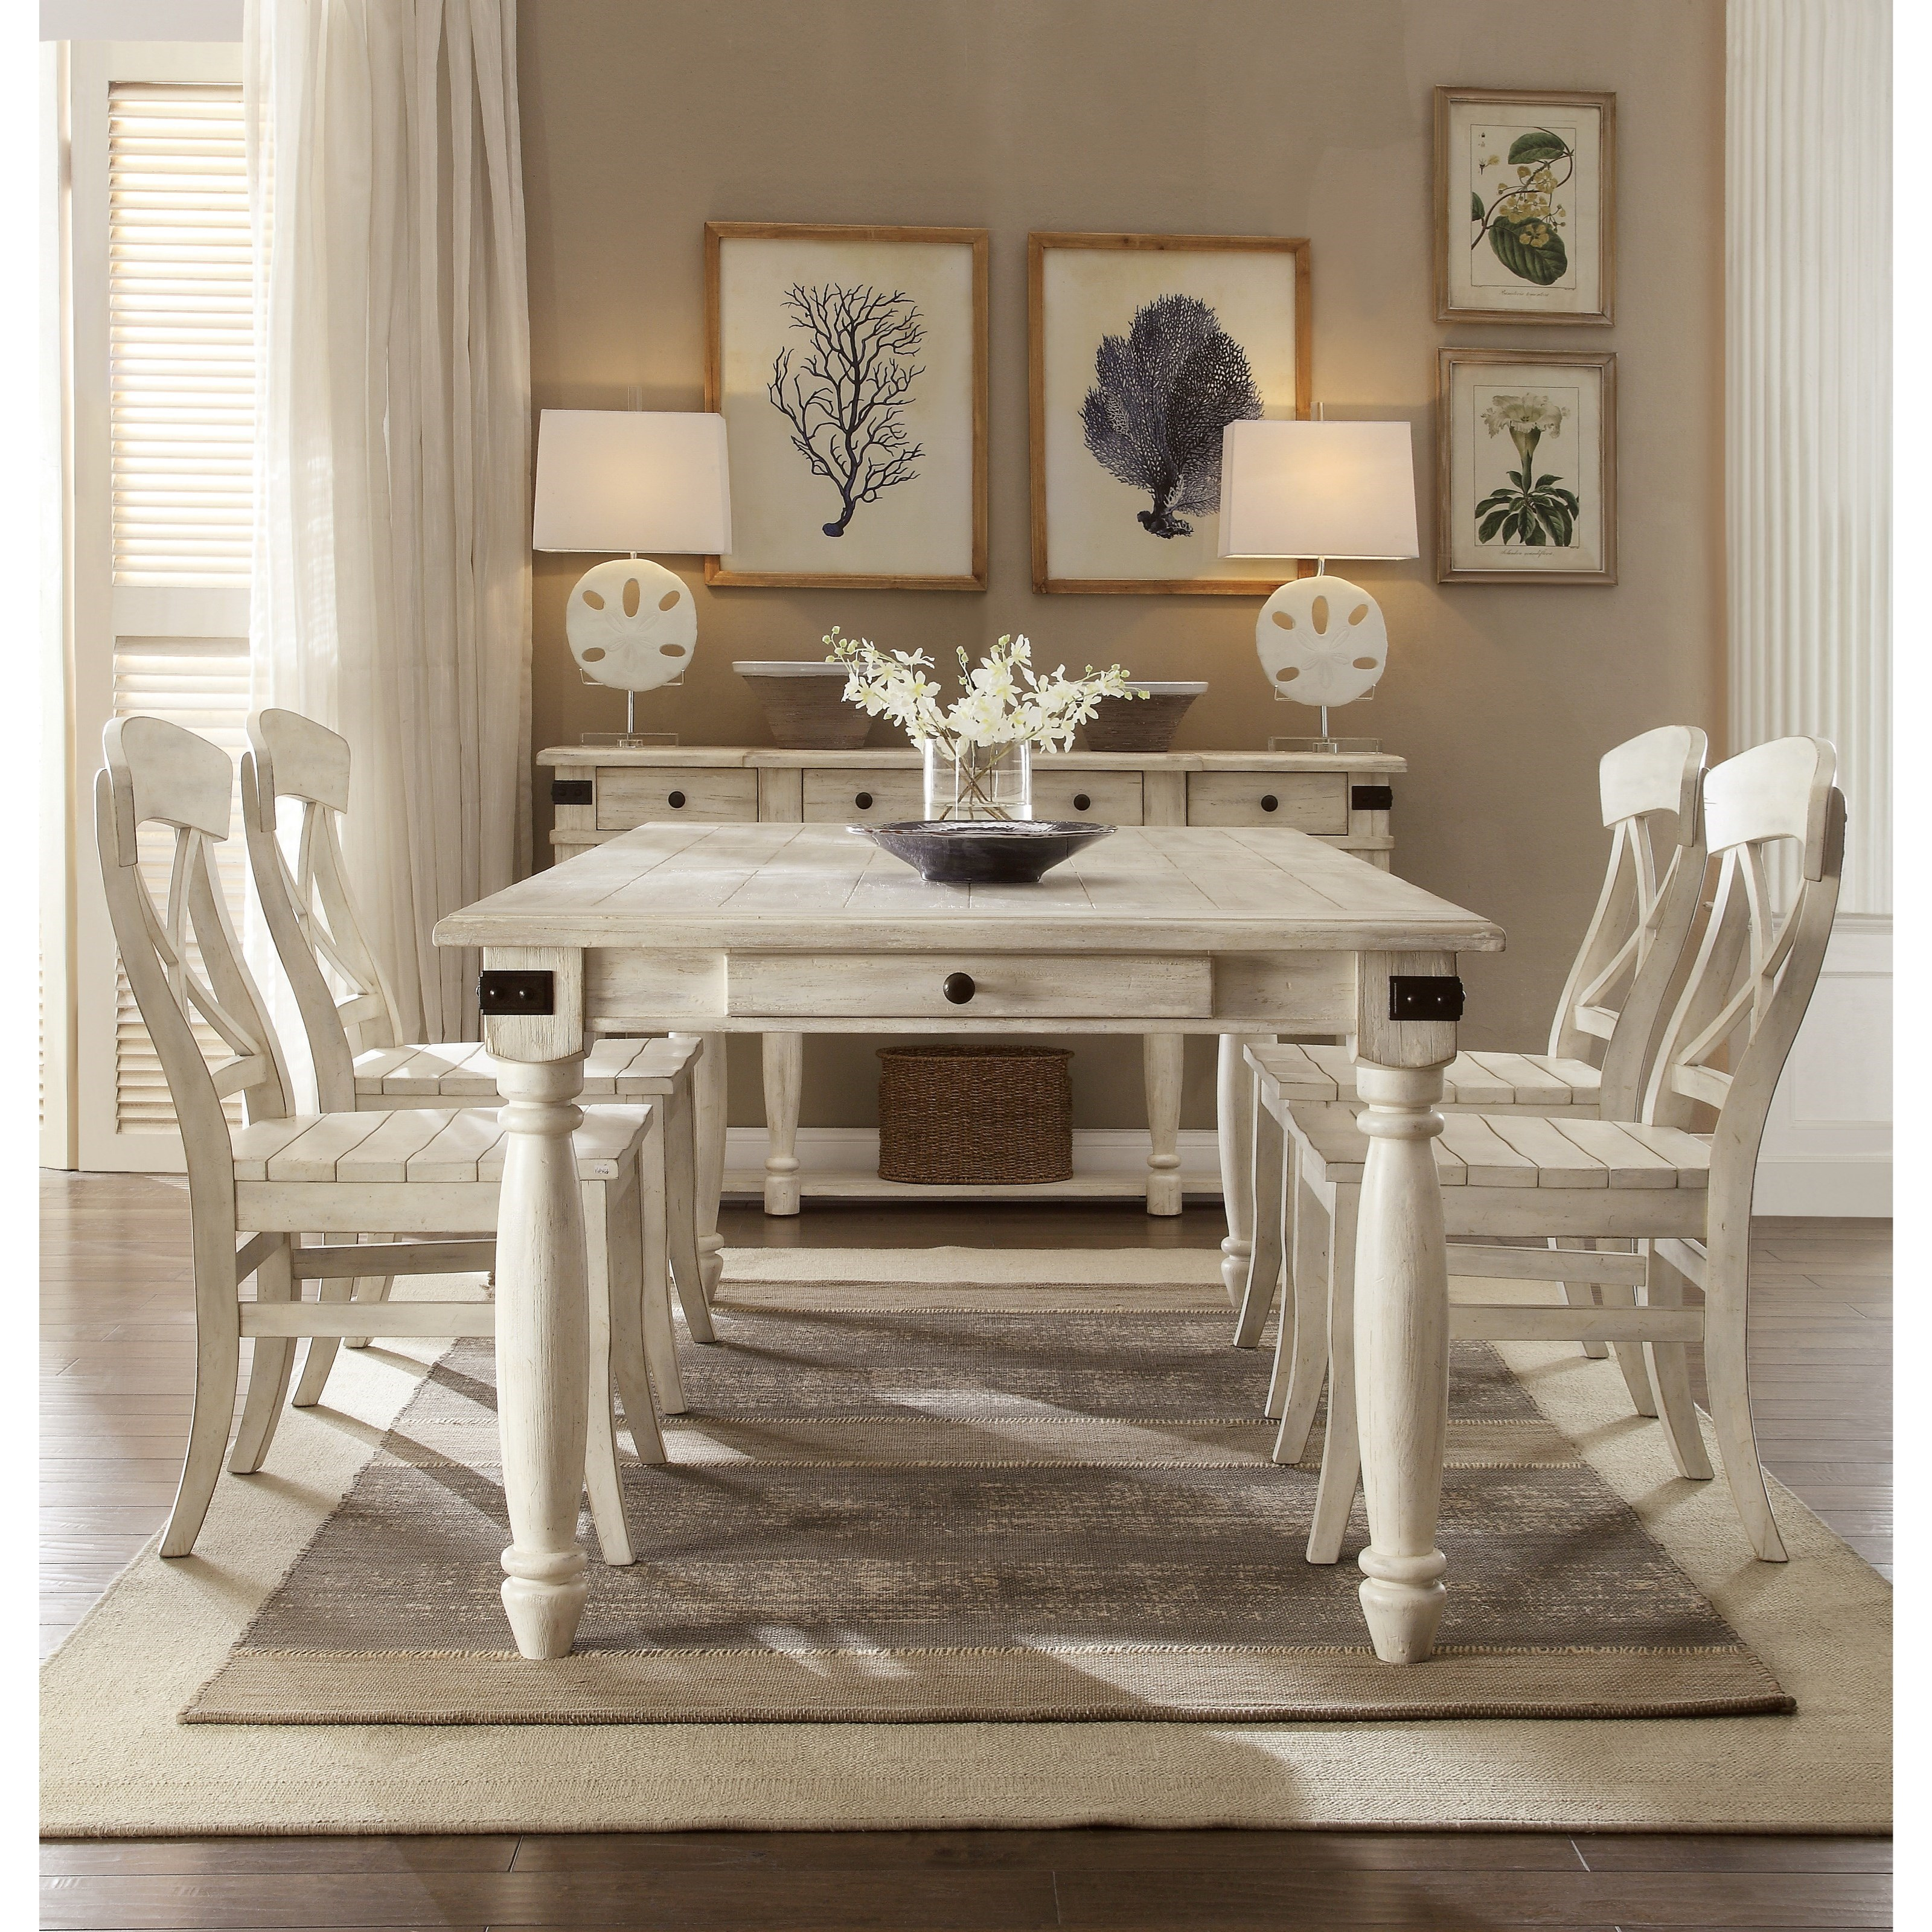 City Furniture Dining Room: Riverside Furniture Regan Casual Dining Room Group